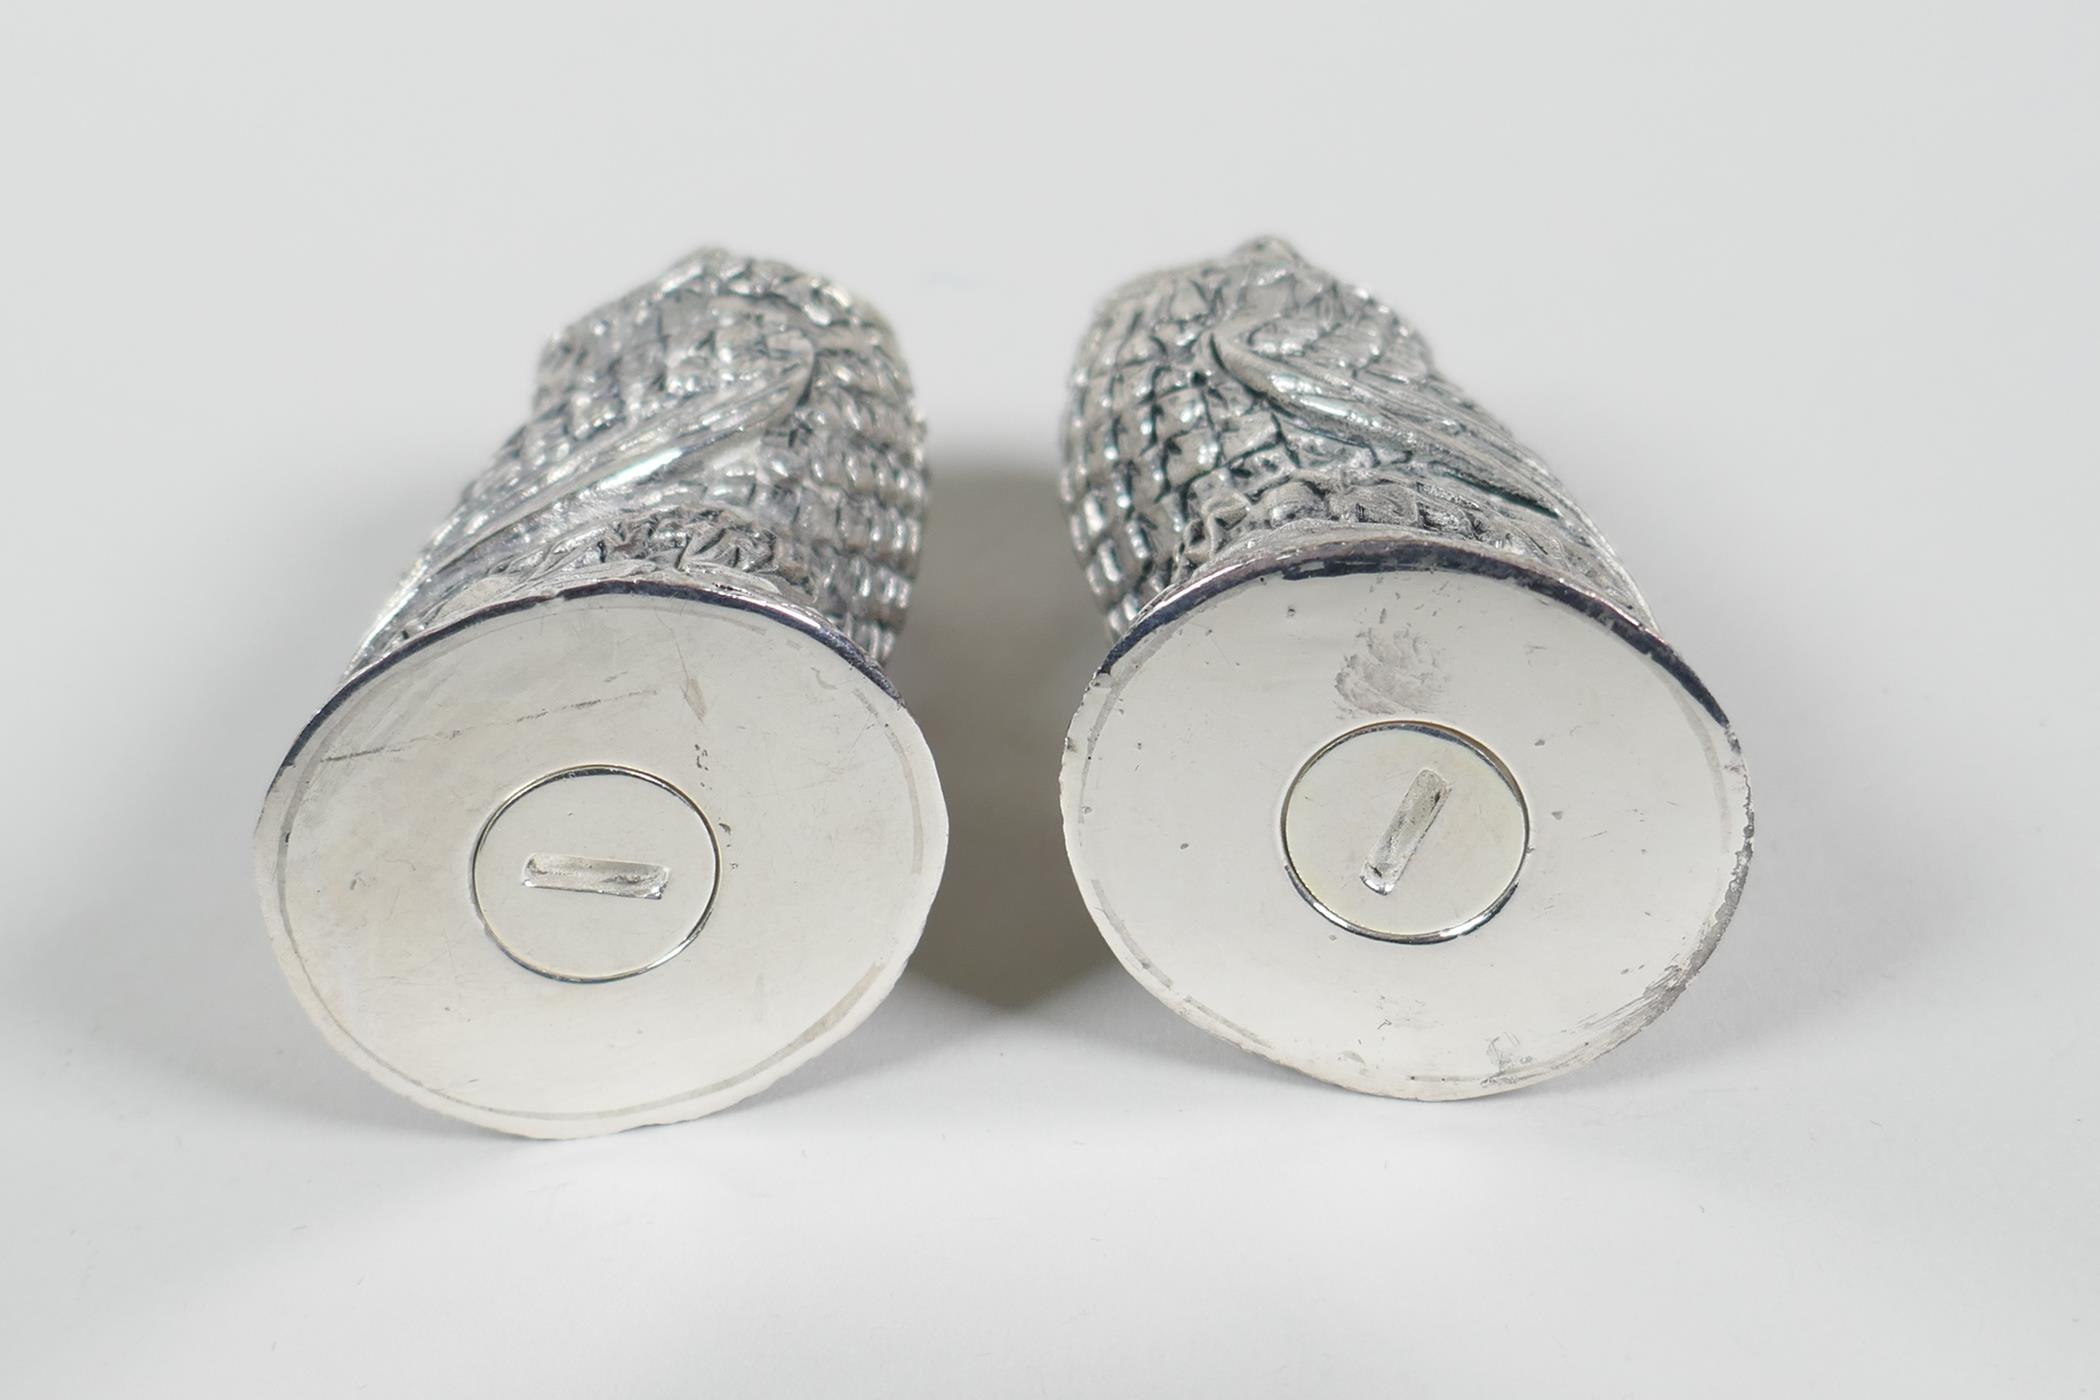 """A pair of silver plated owl condiments, 2"""" high - Image 2 of 2"""